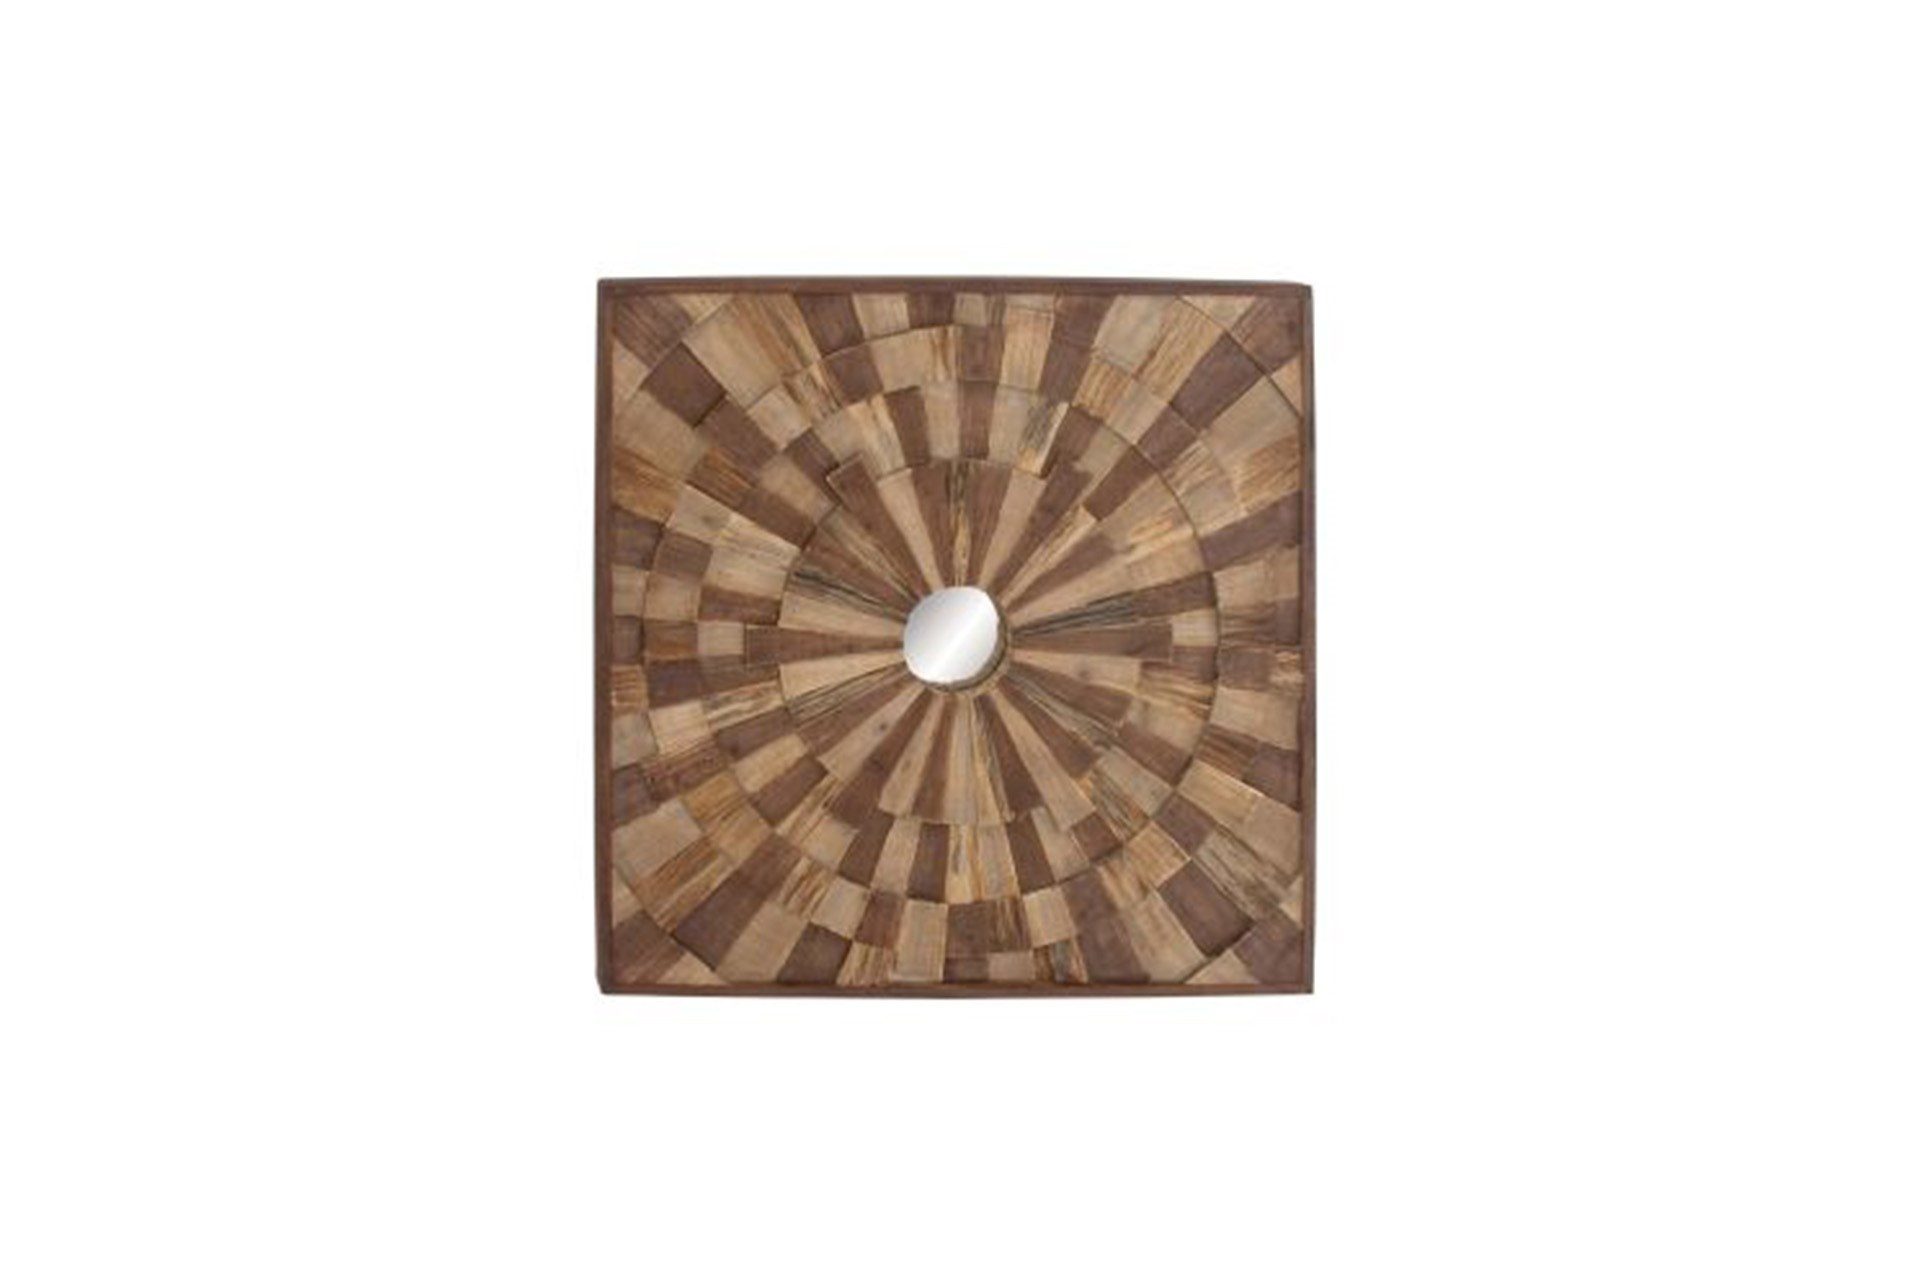 tiles wood wall decor wooden for cool reclaimed